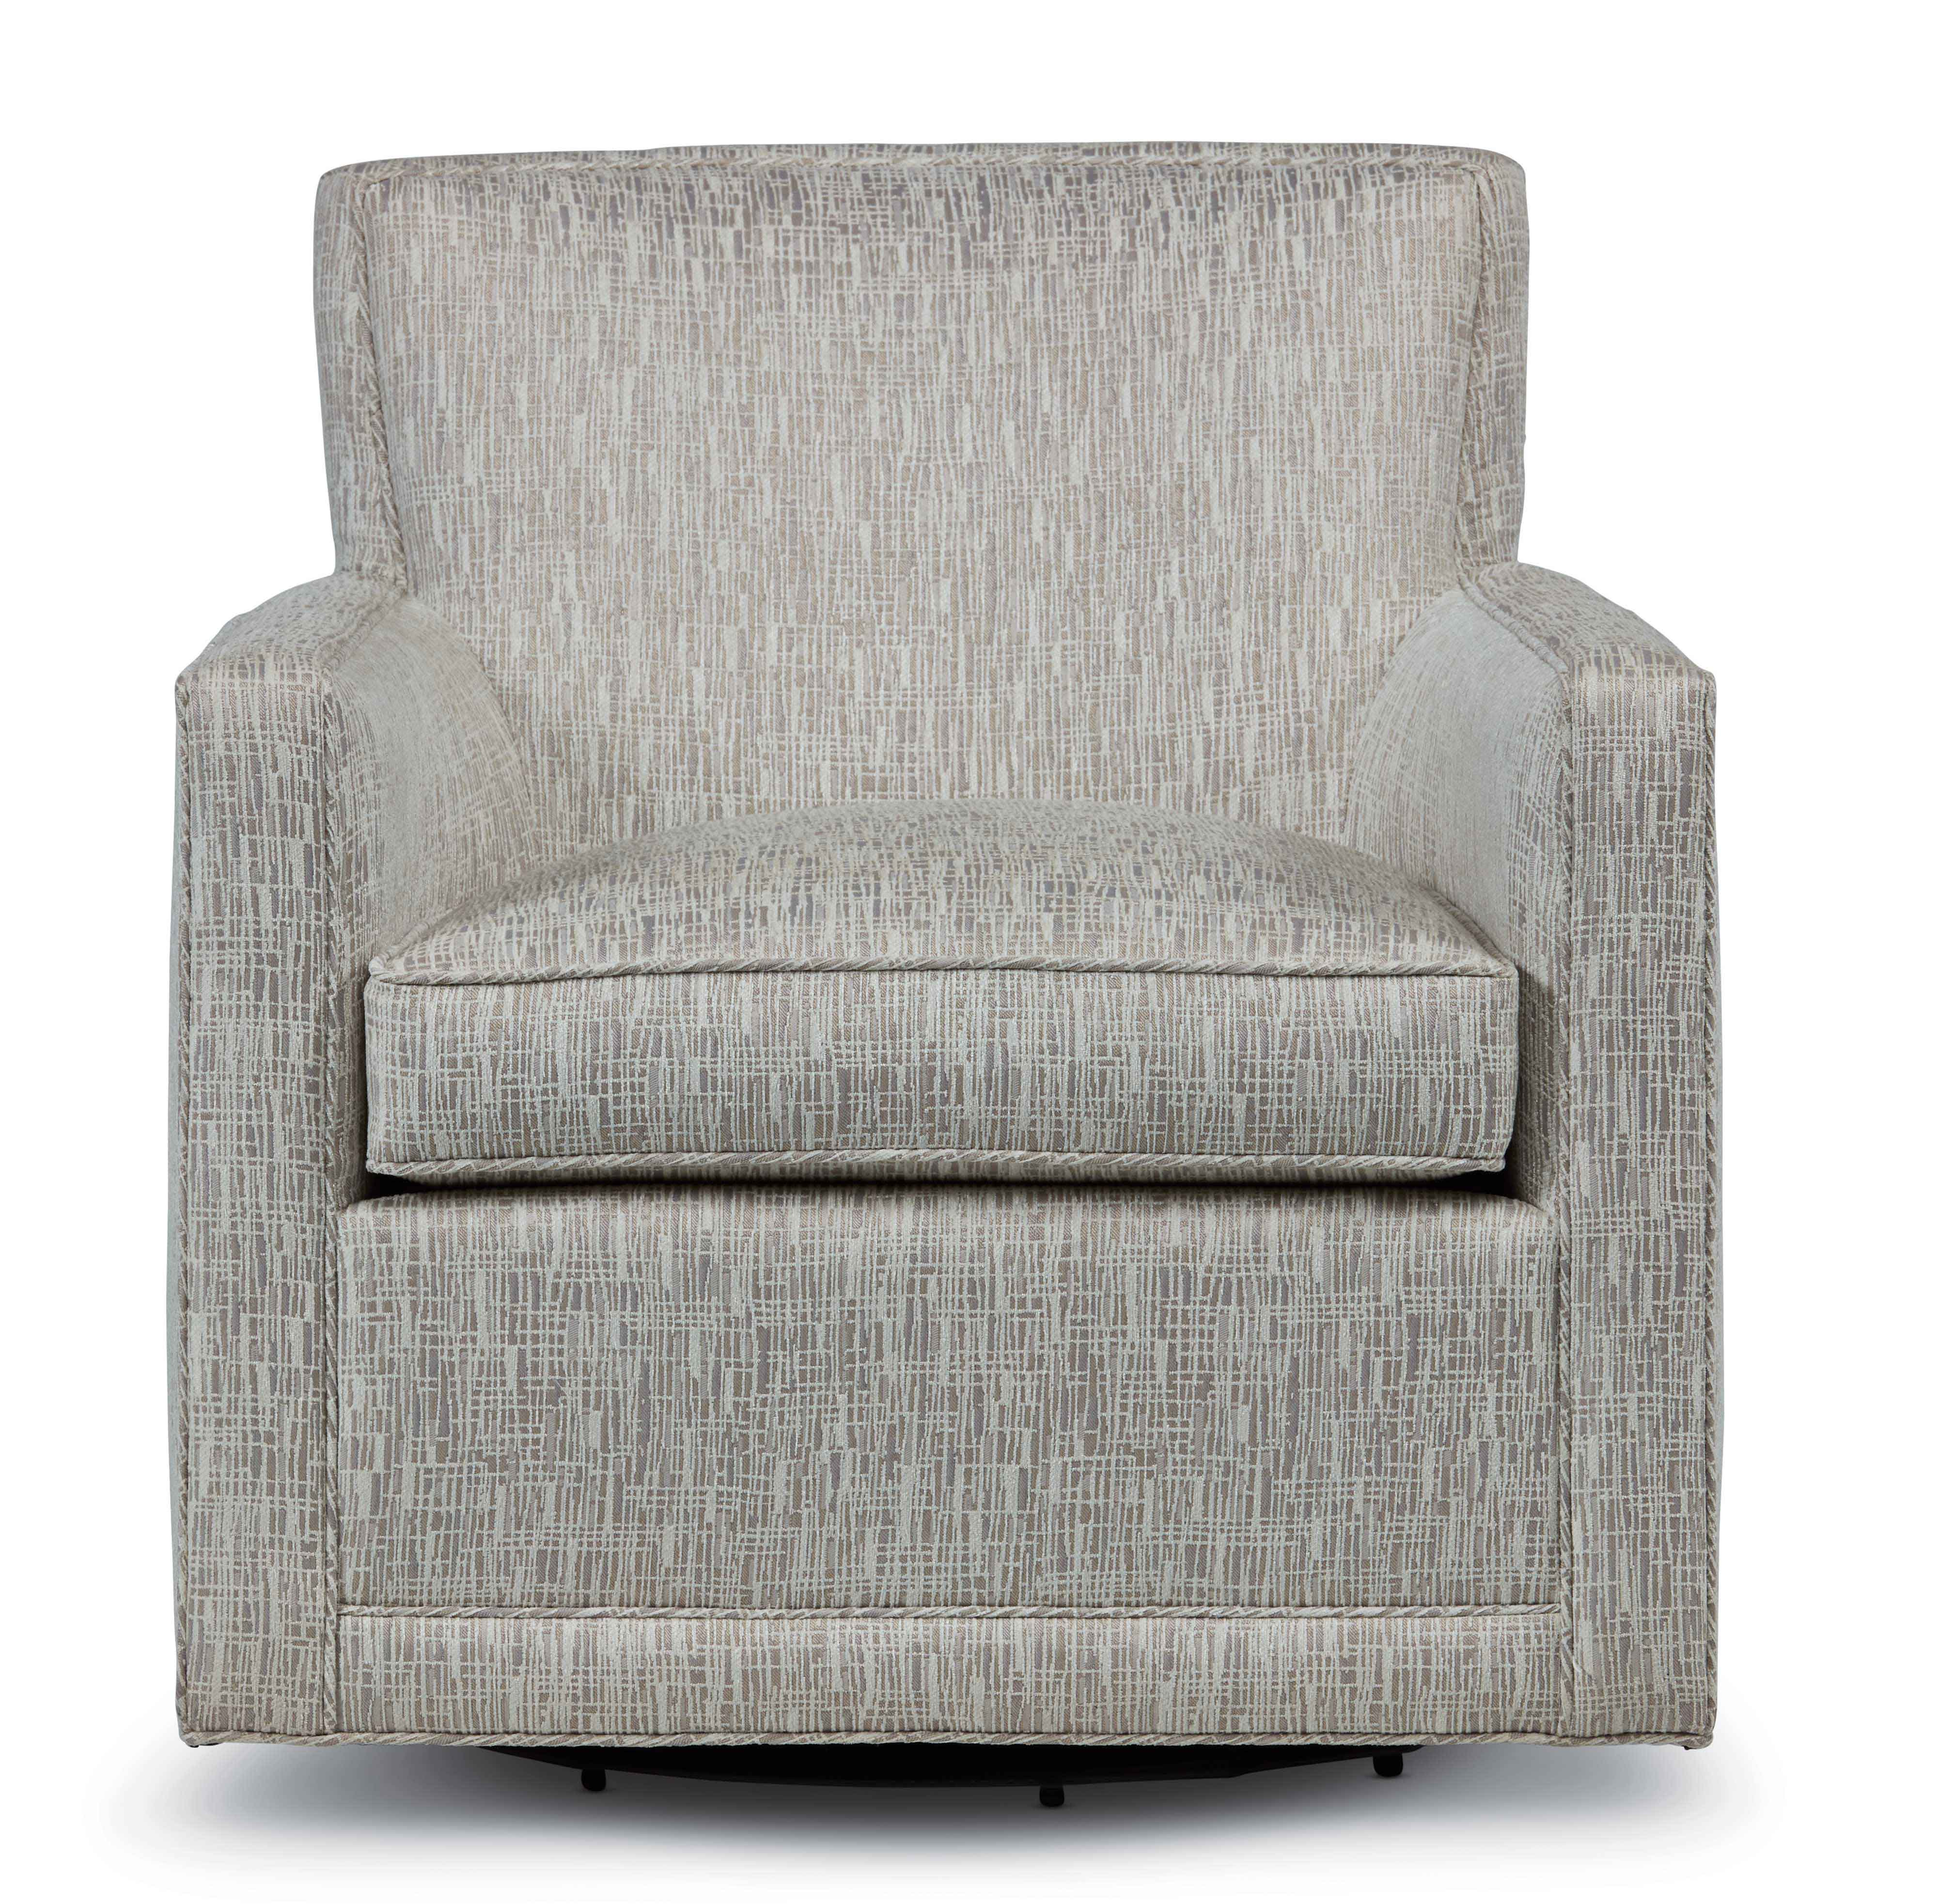 Delta Swivel Chair Living Room Chairs Chaises Jessica Charles Robb Stucky